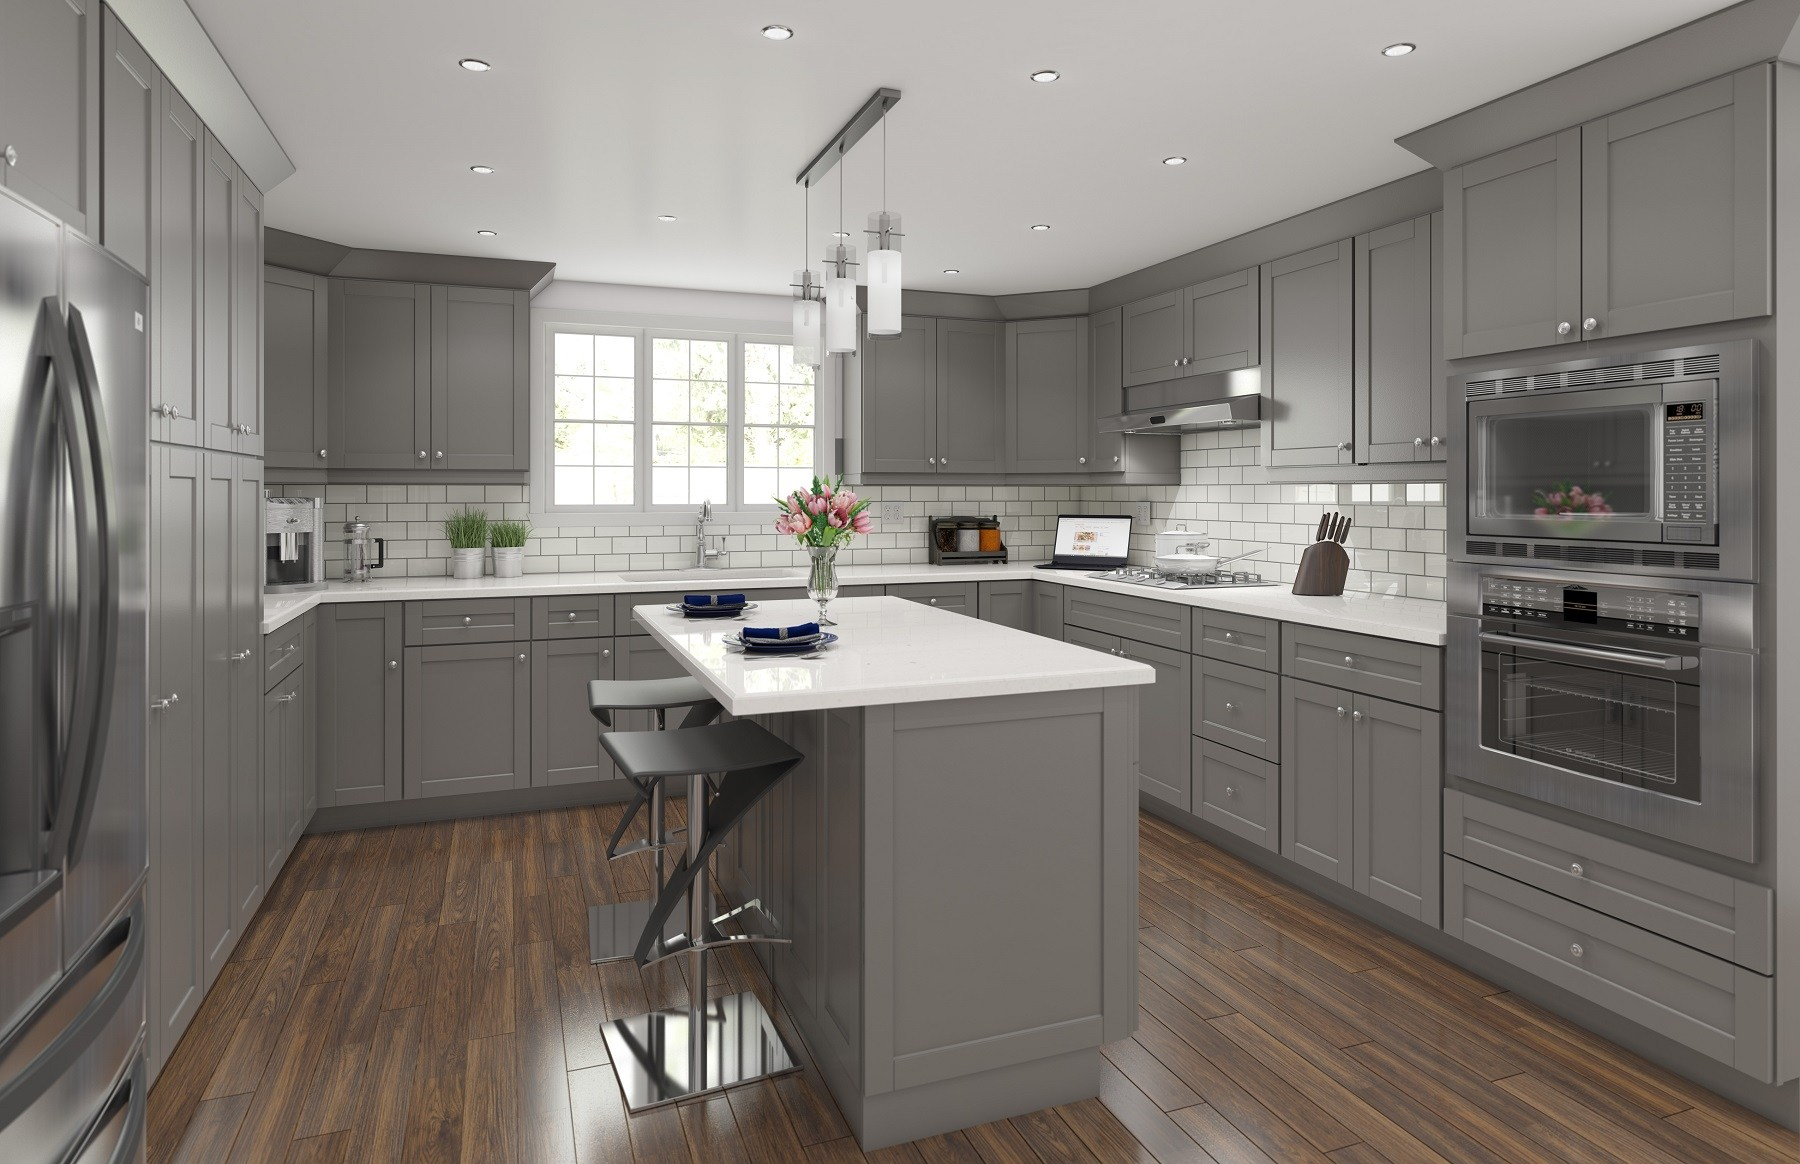 Contemporary Kitchen Cabinets - AMF Cabinets